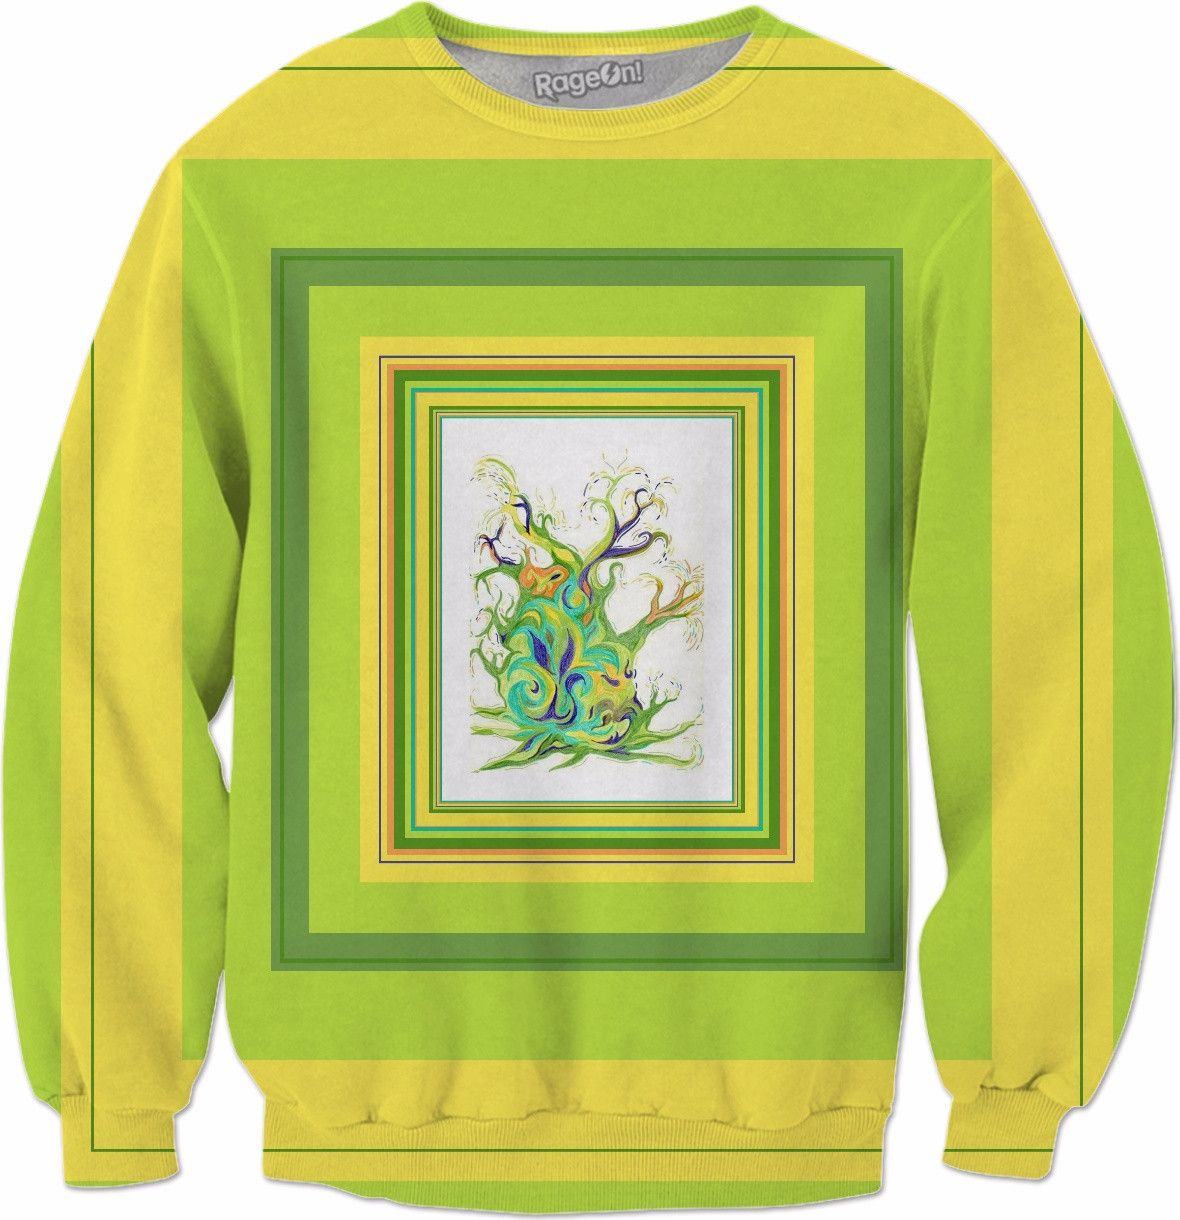 Check out my new product https://www.rageon.com/products/living-sap-tree-art on RageOn!